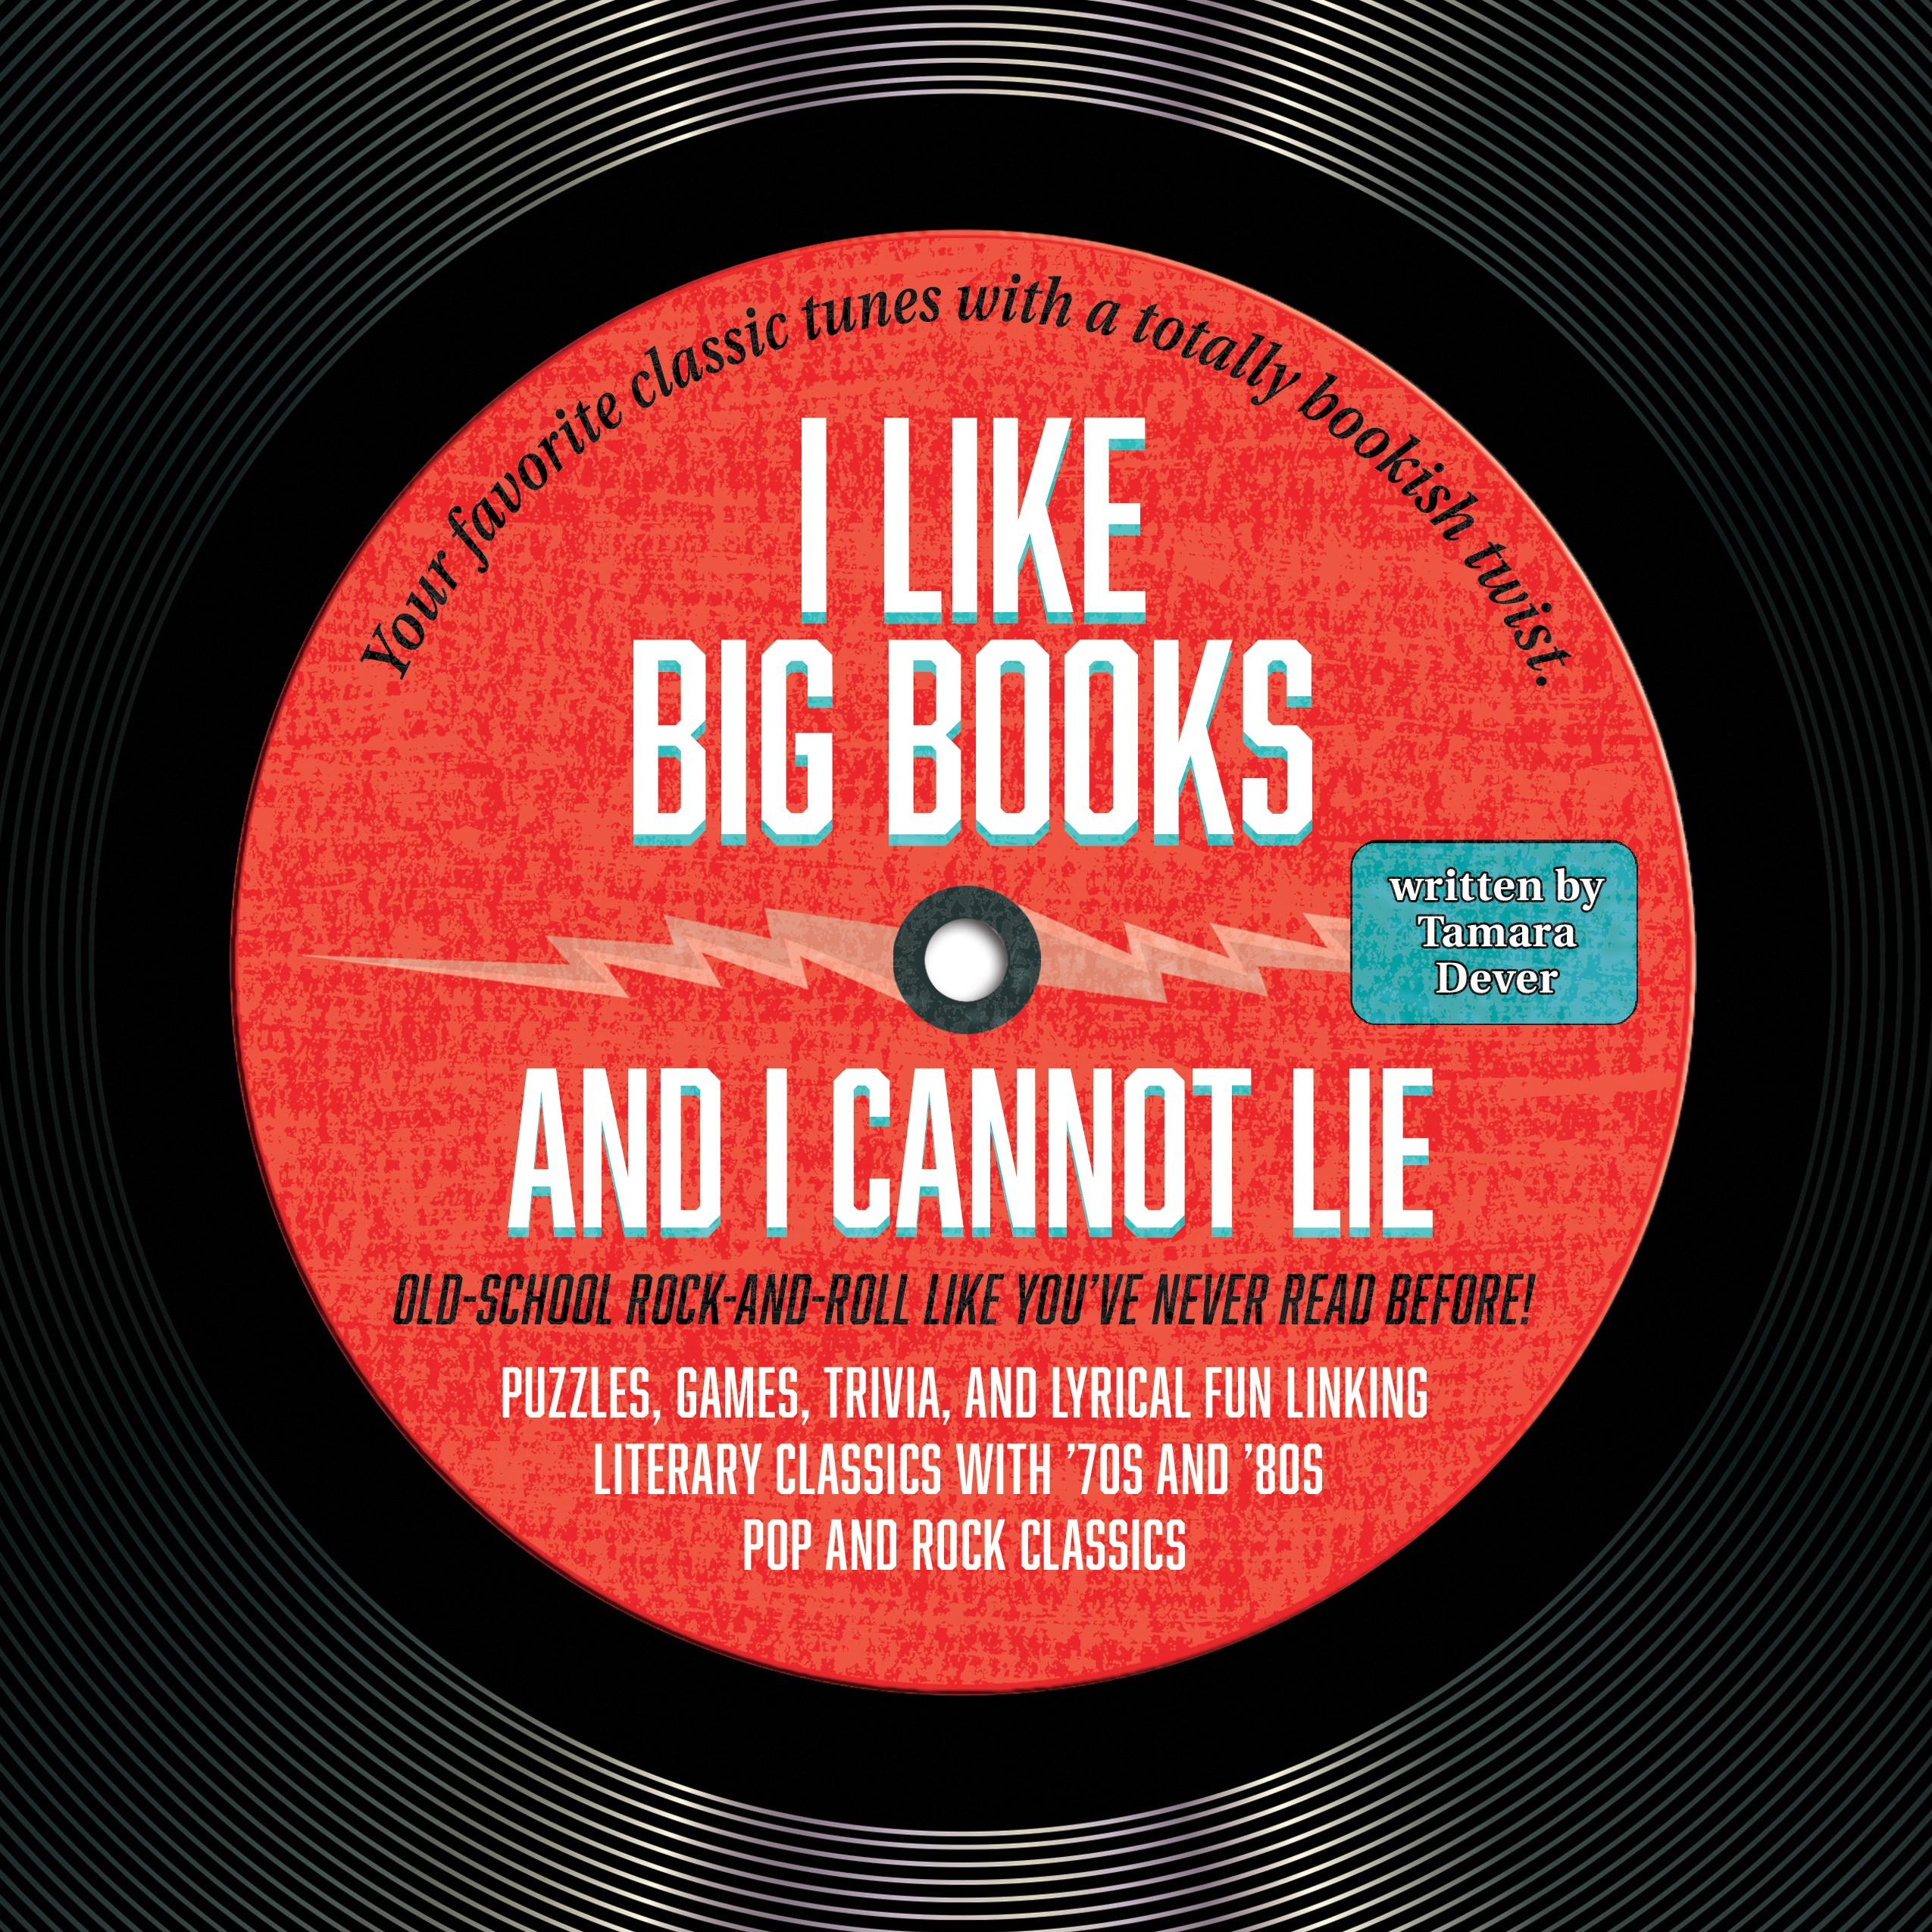 I Like Big Books and I Cannot Lie: Old-school Rock-and-Roll Like You've Never Read Before!